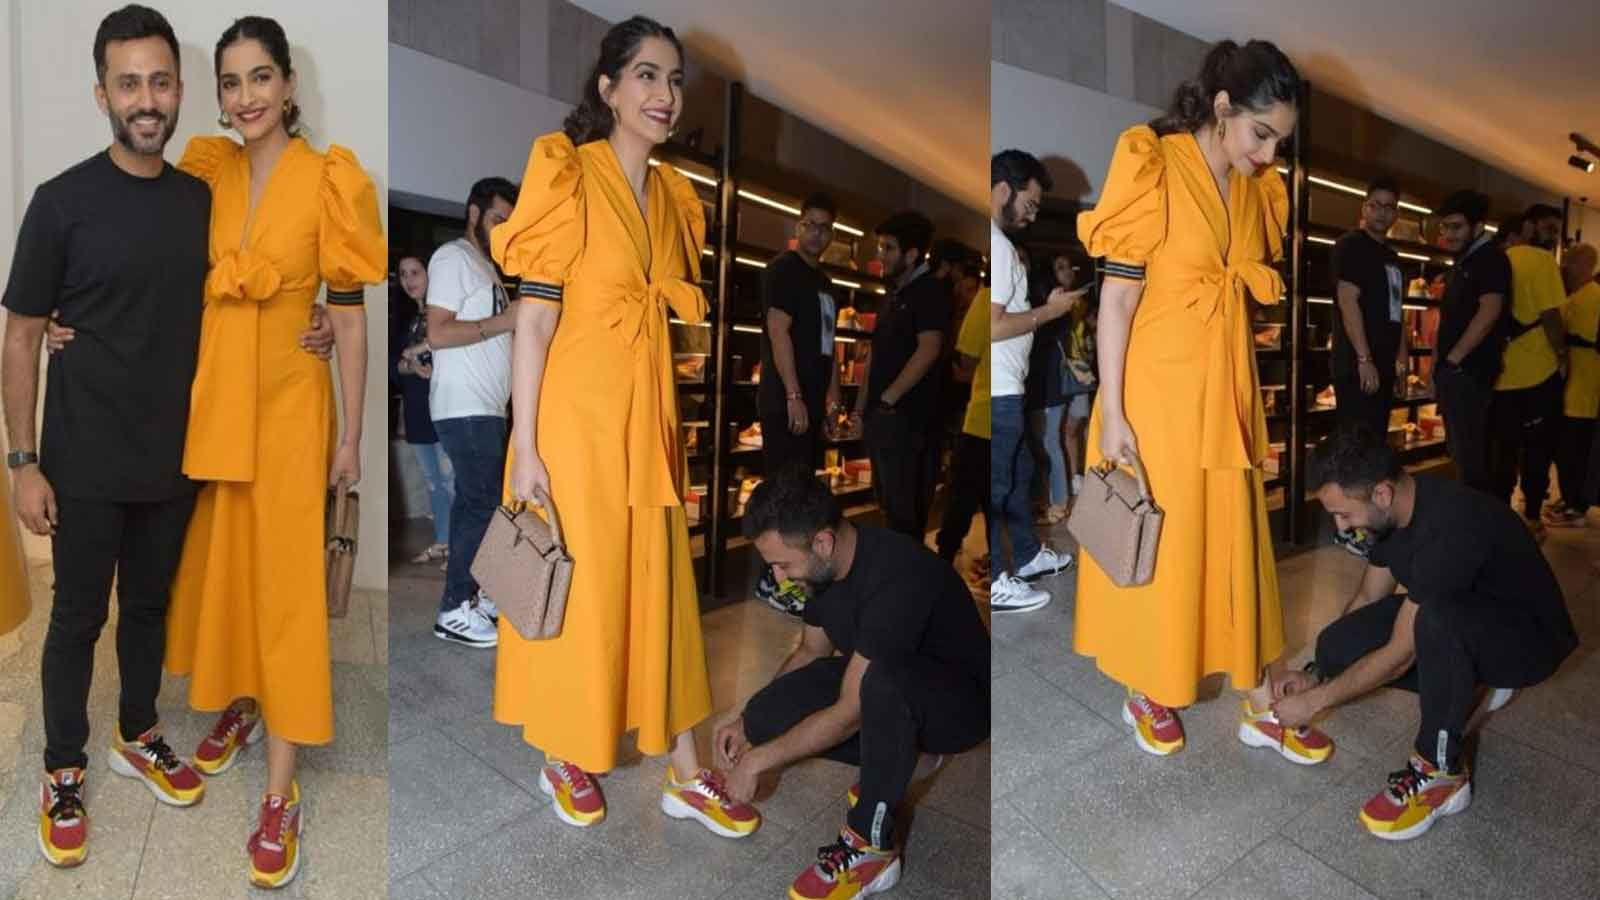 sonam-kapoors-husband-anand-ahuja-goes-down-on-knees-to-tie-her-shoelace